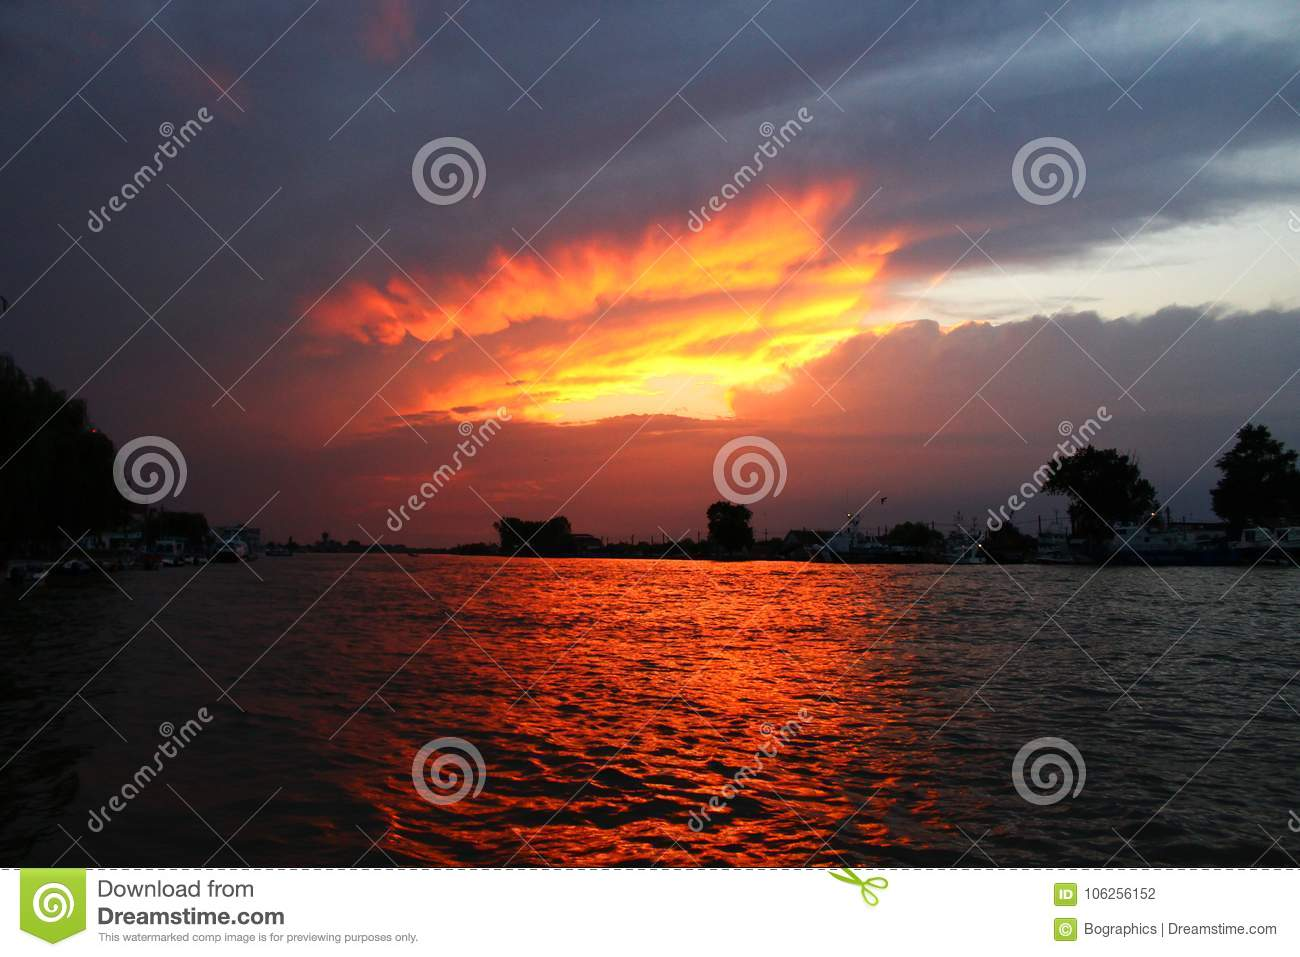 Amazing orange sunset between clouds over water